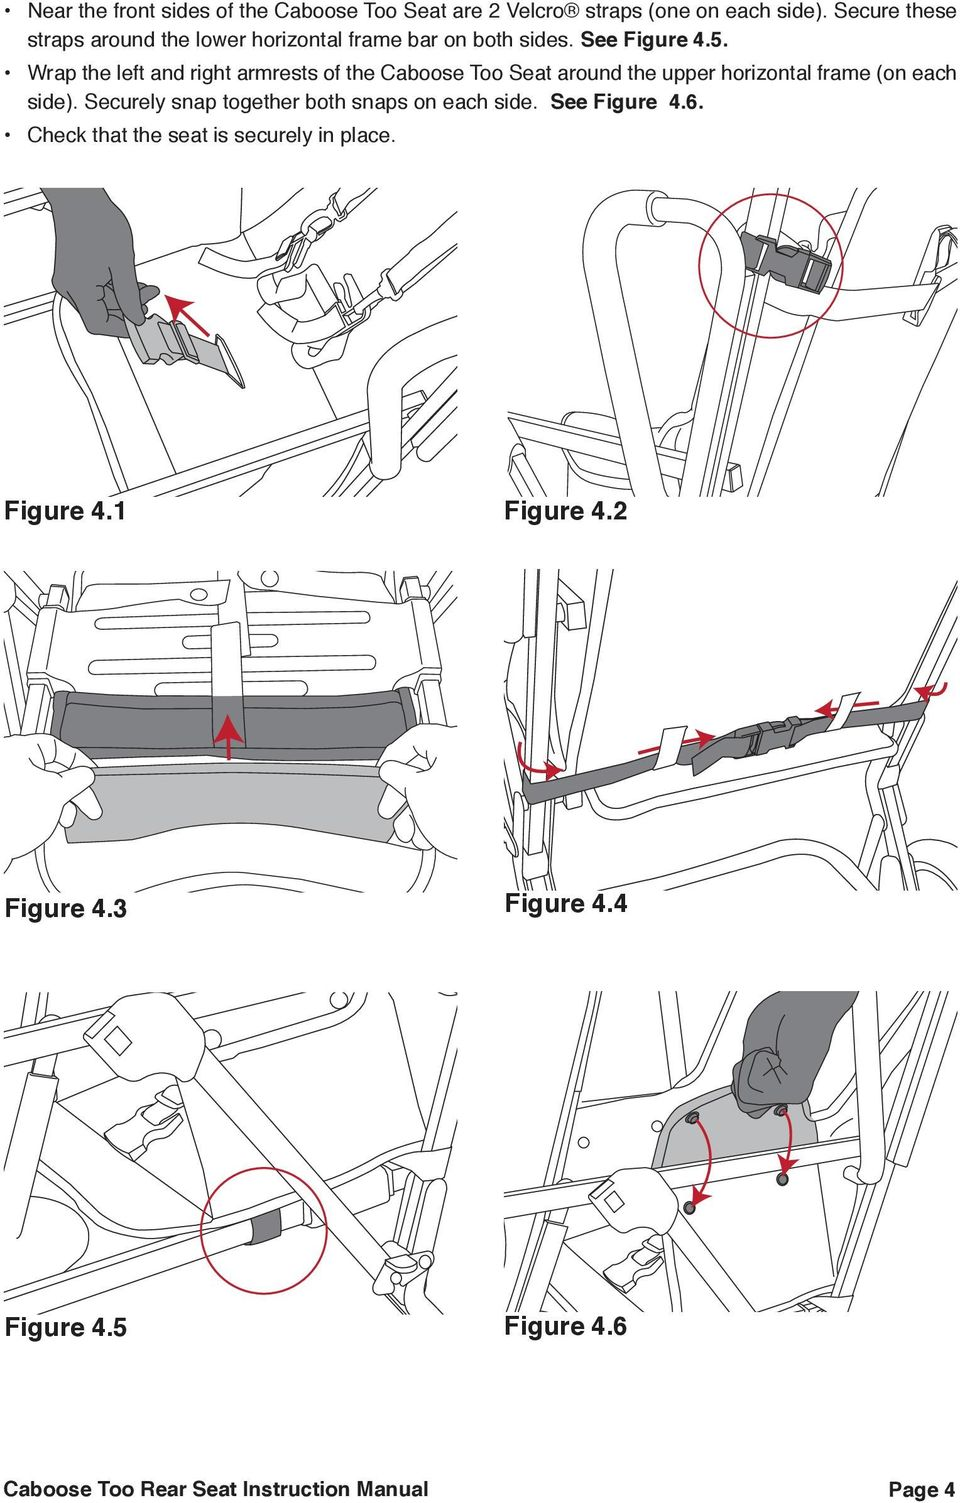 Wrap the left and right armrests of the Caboose Too Seat around the upper horizontal frame (on each side).